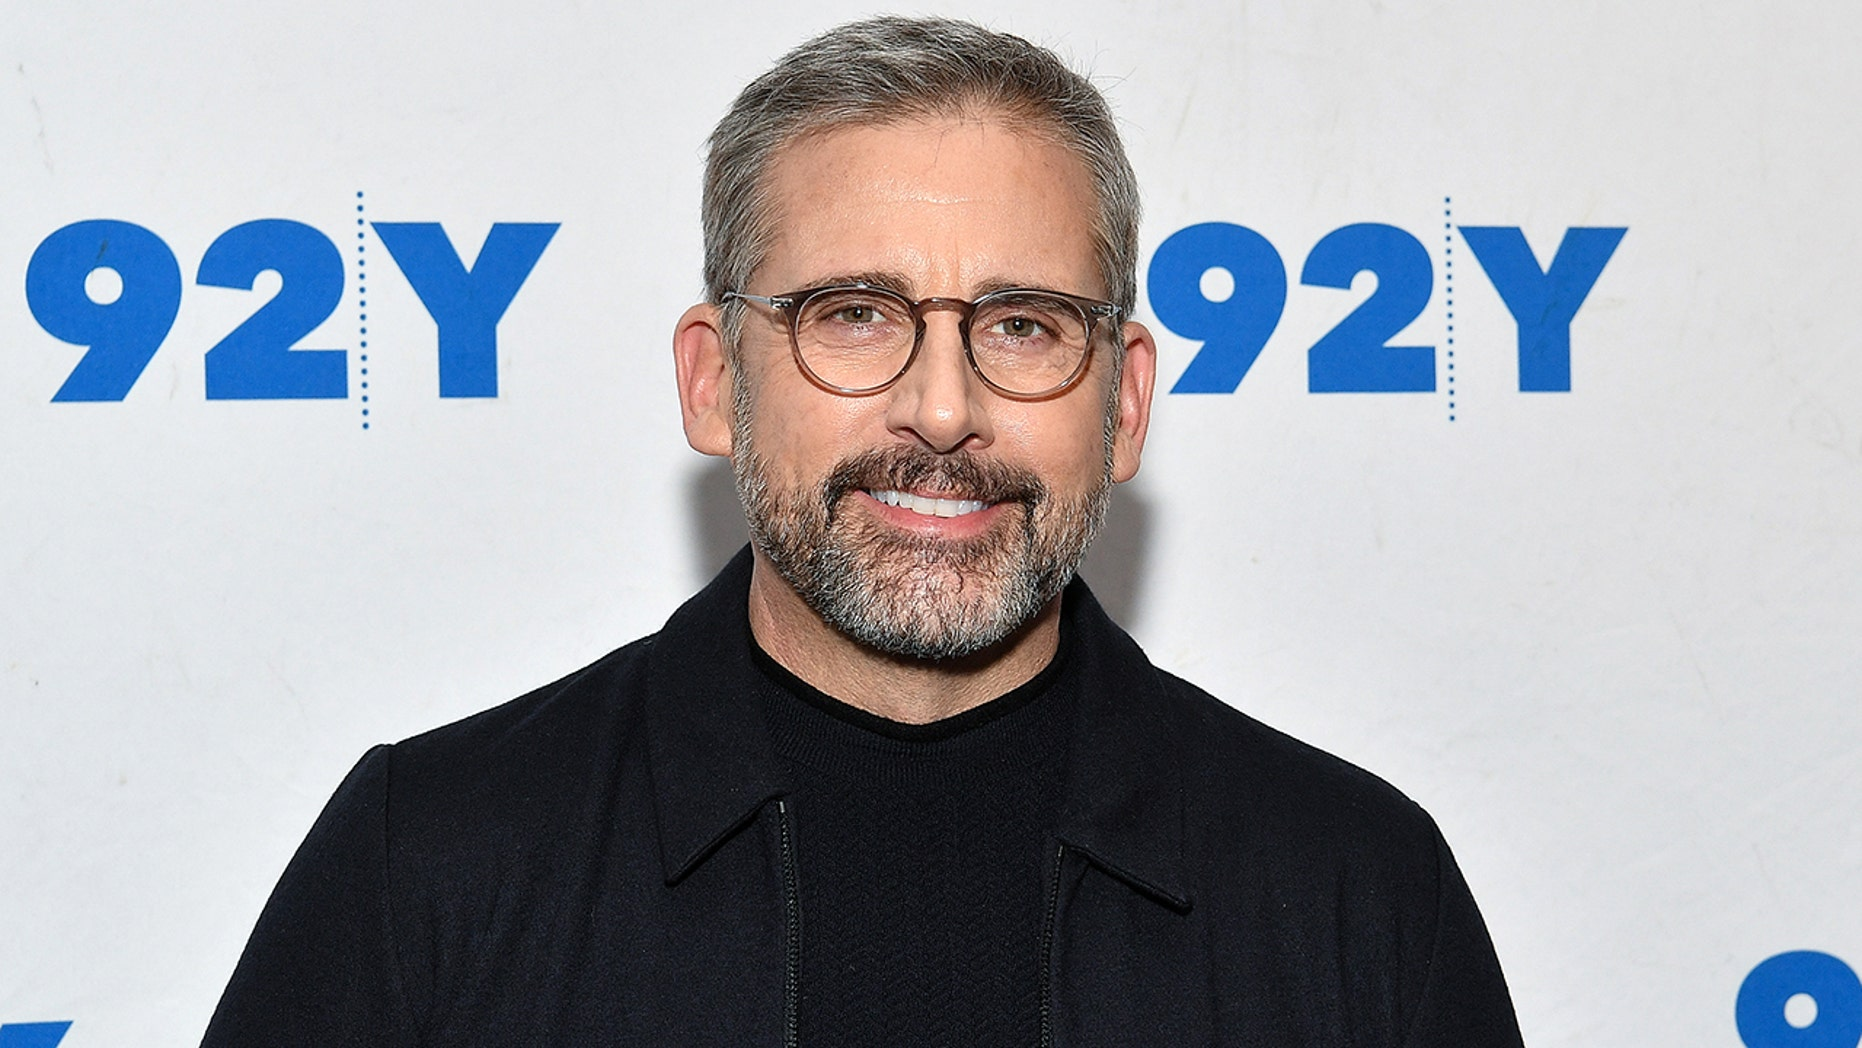 'Space Force' Comedy Series From Steve Carell, Greg Daniels Set at Netflix